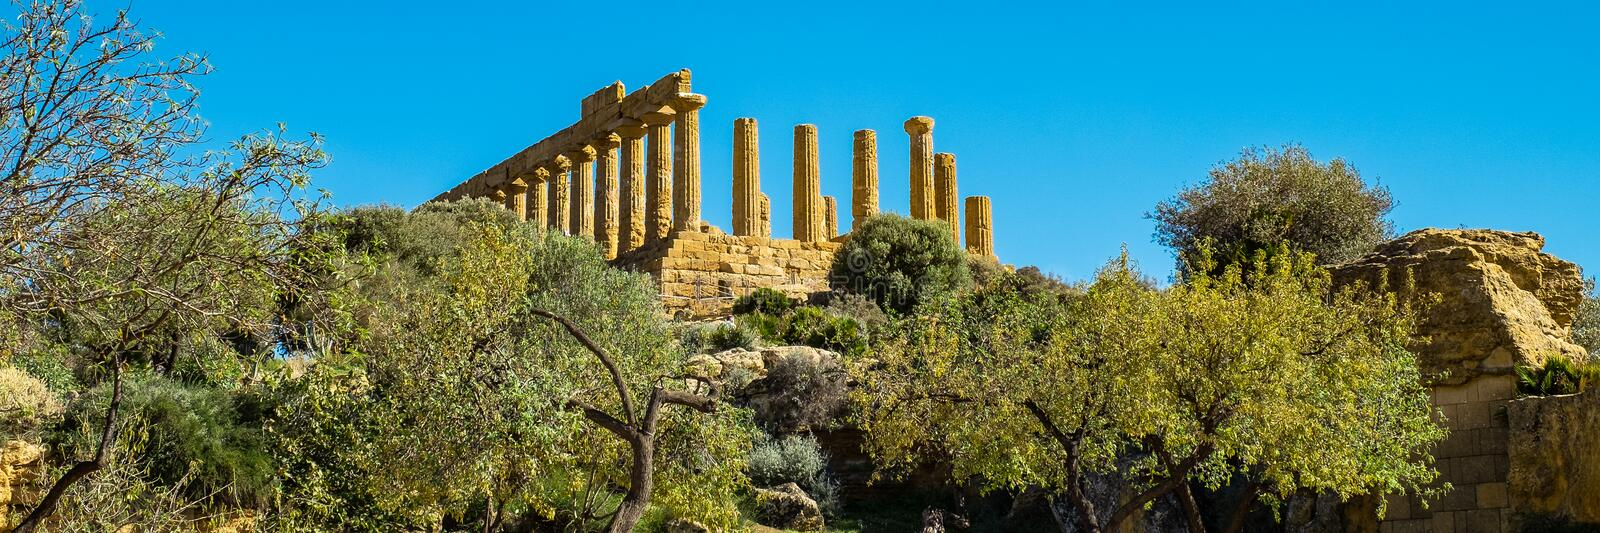 Ruined Temple of Heracles columns in ancient Valley of Temple, Agrigento, Sicily royalty free stock images